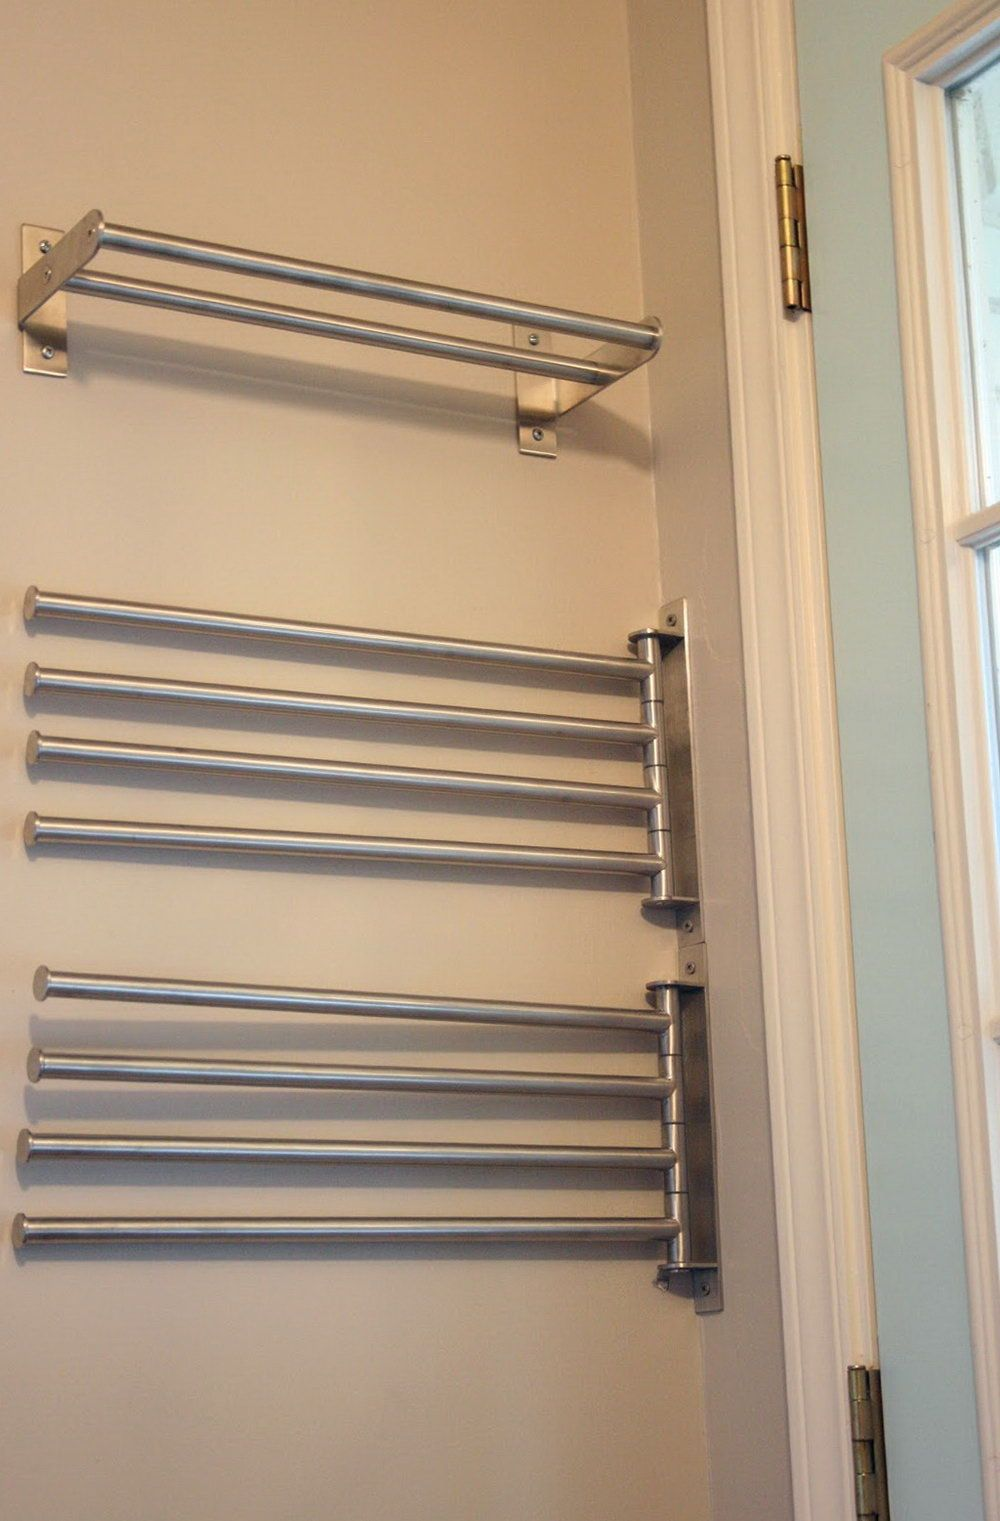 Laundry room hanging drying racks home style pinterest laundry